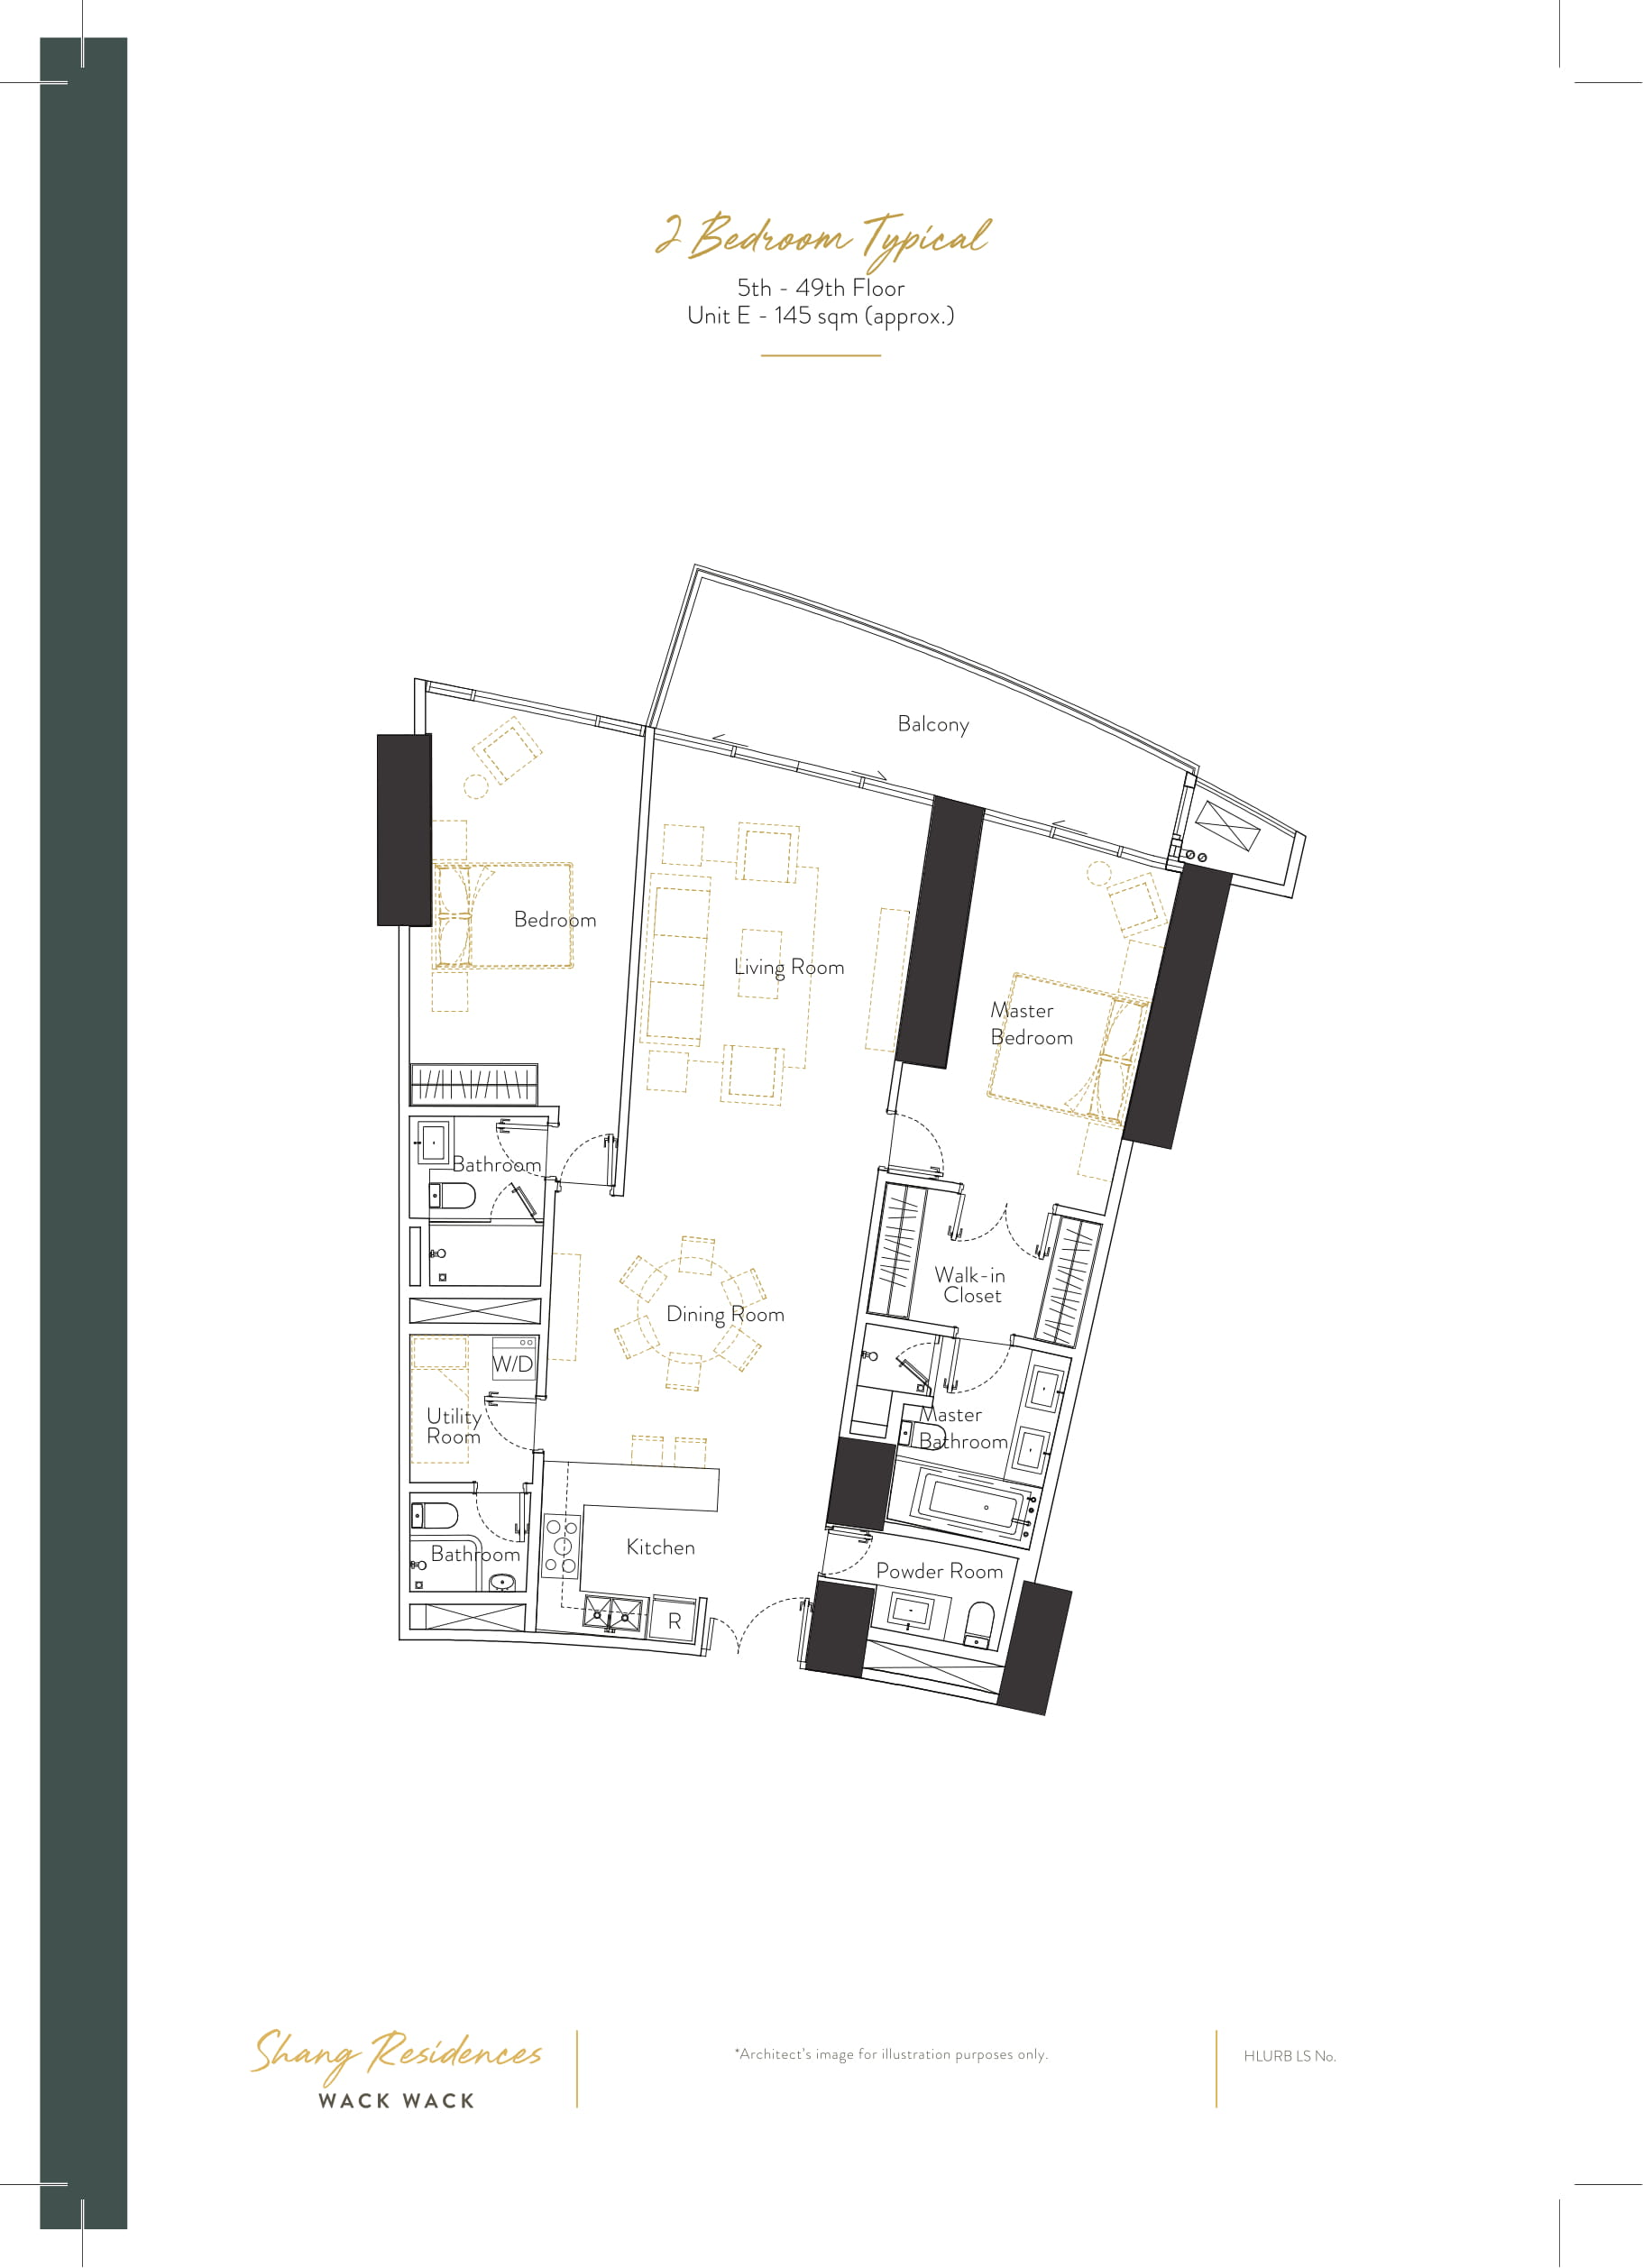 2 Bedroom Typical 5th-49th-Unit E-SHANG RESIDENCES WACK WACK.jpg